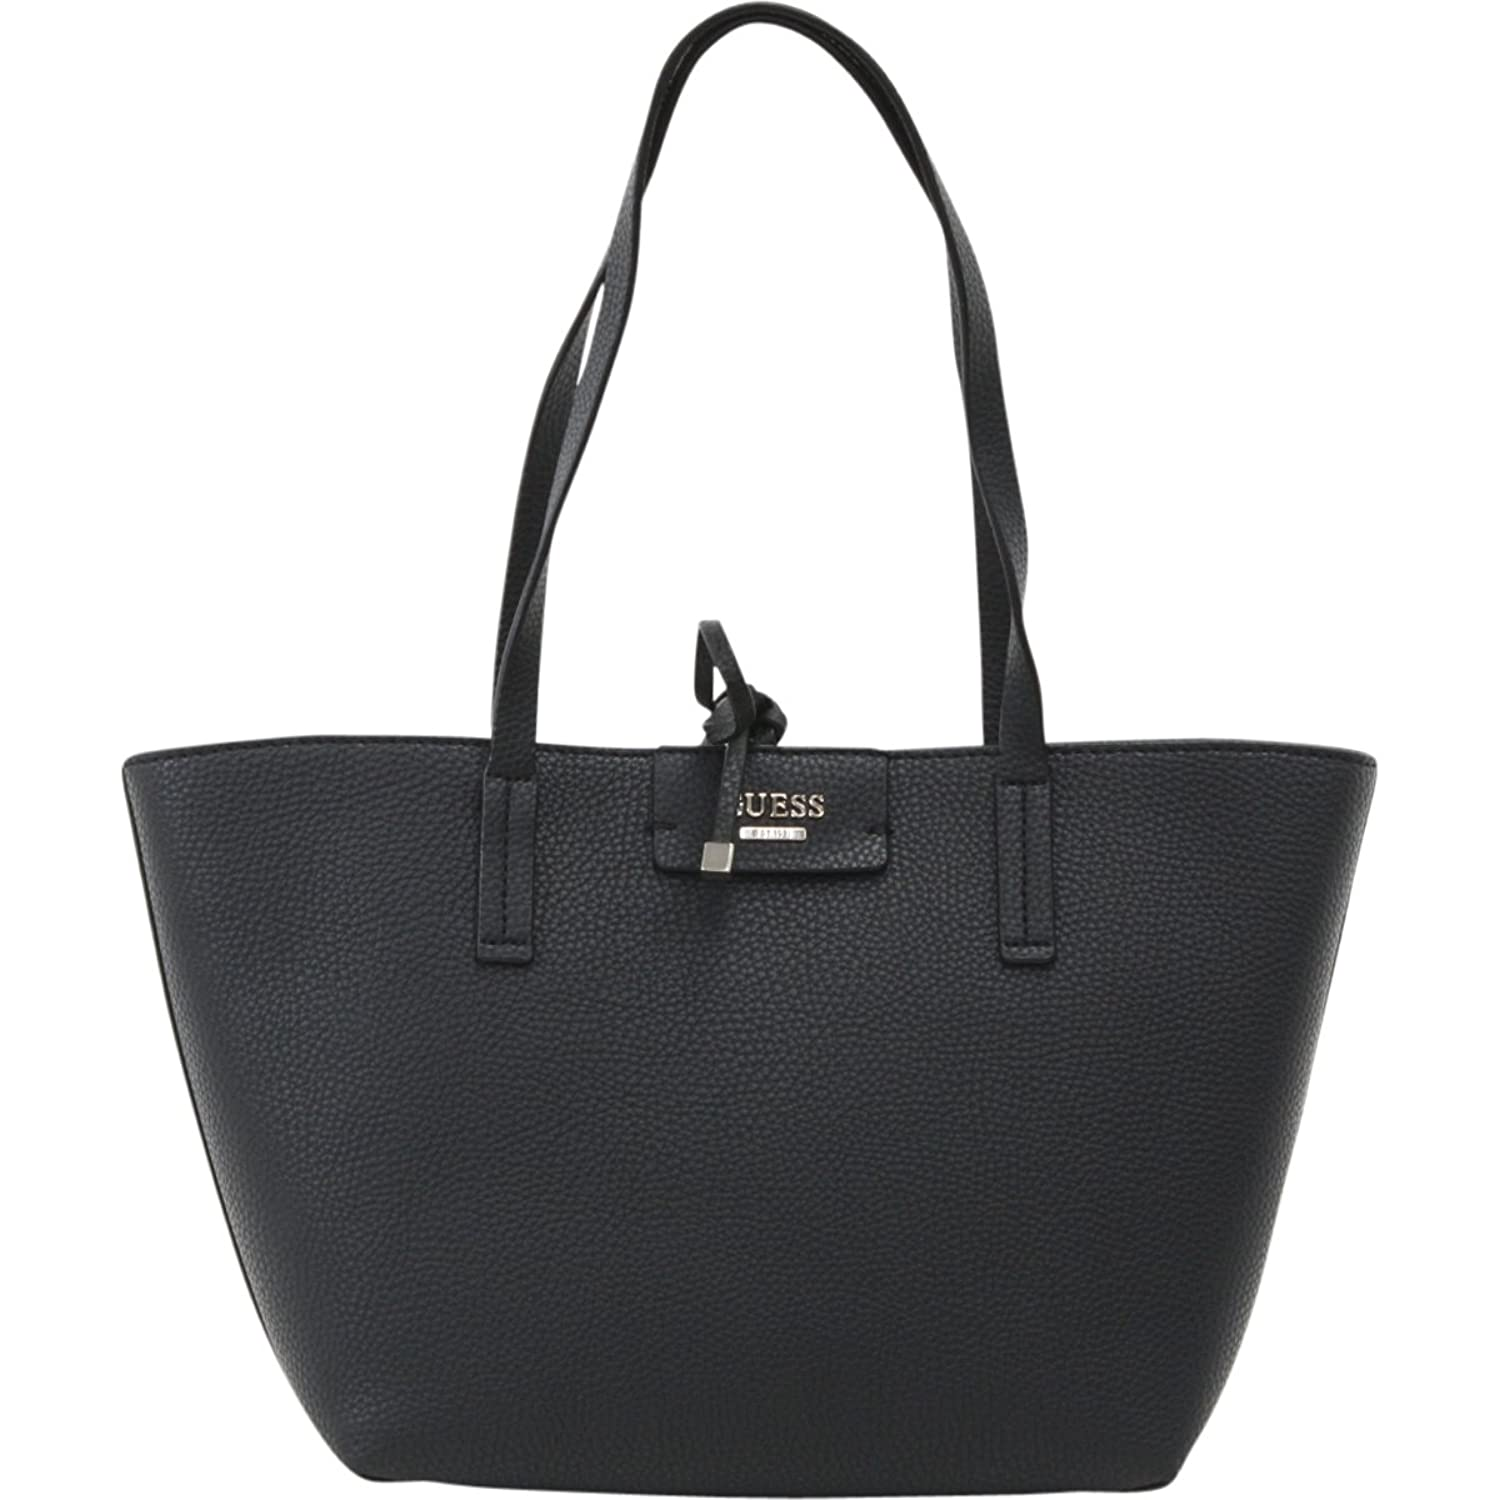 Bobbi Inside Out Tote Velvet / Black Guess DXOzUeavx